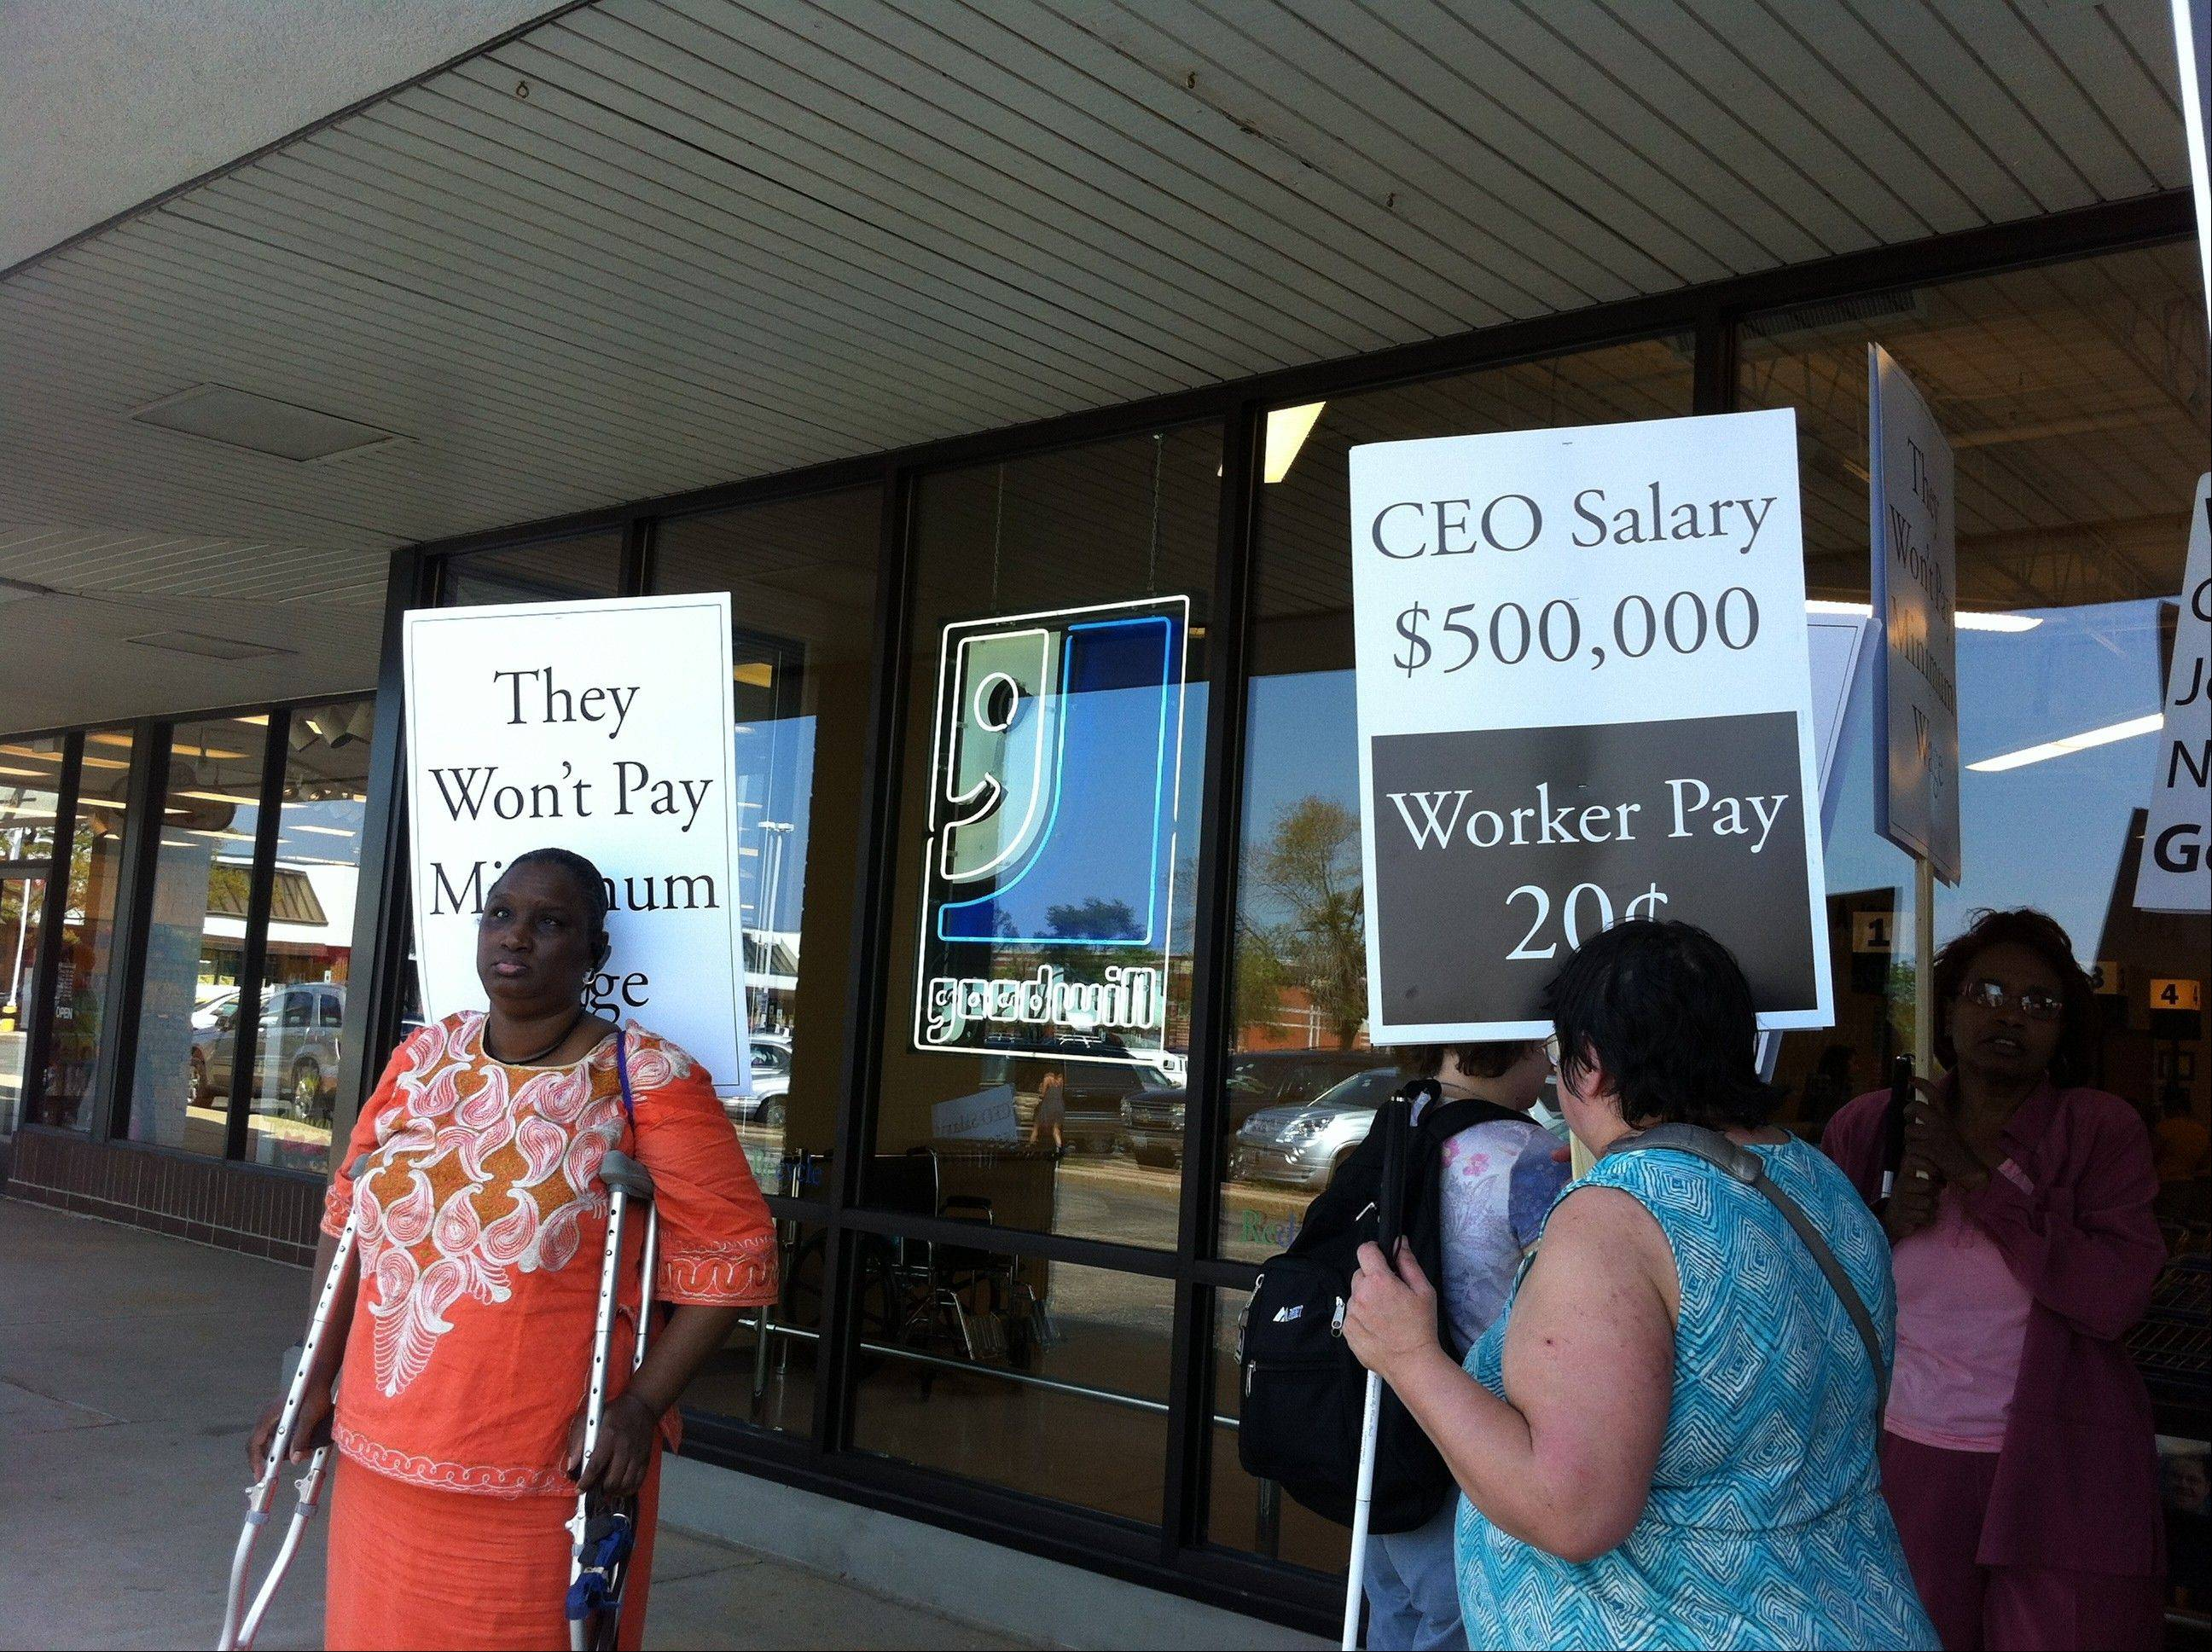 Protesters from the National Federation of the Blind of Illinois march outside the Des Plaines Goodwill Store and Donation Center on Saturday for what they say are unfair wages paid to some employees.